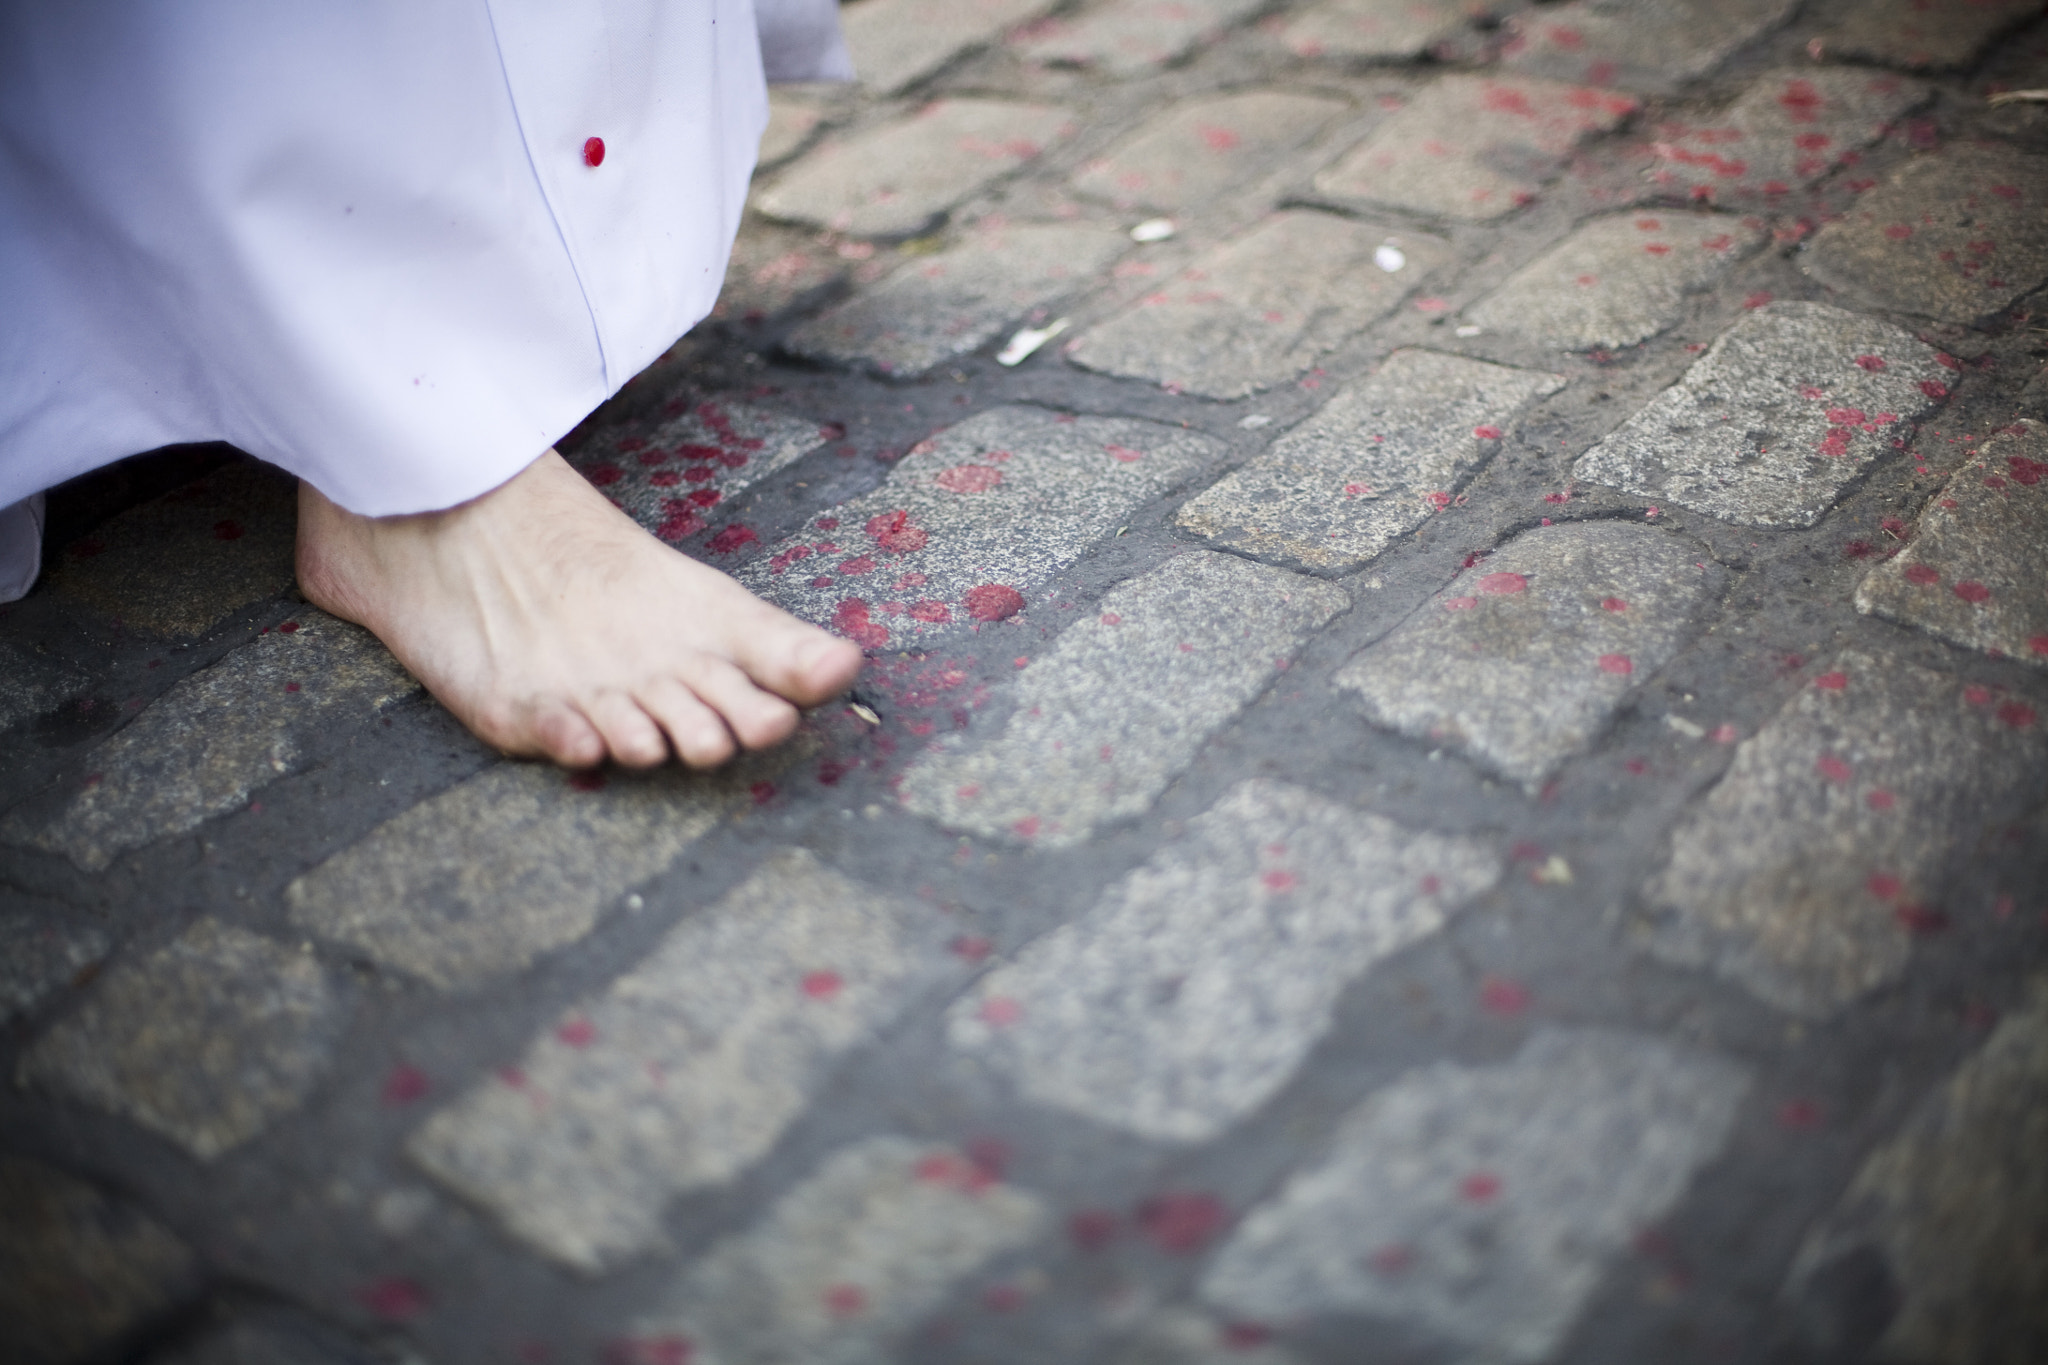 Detail of a barefoot penitent walking on the pavement with melted wax drops, Holy Week 2008, Seville